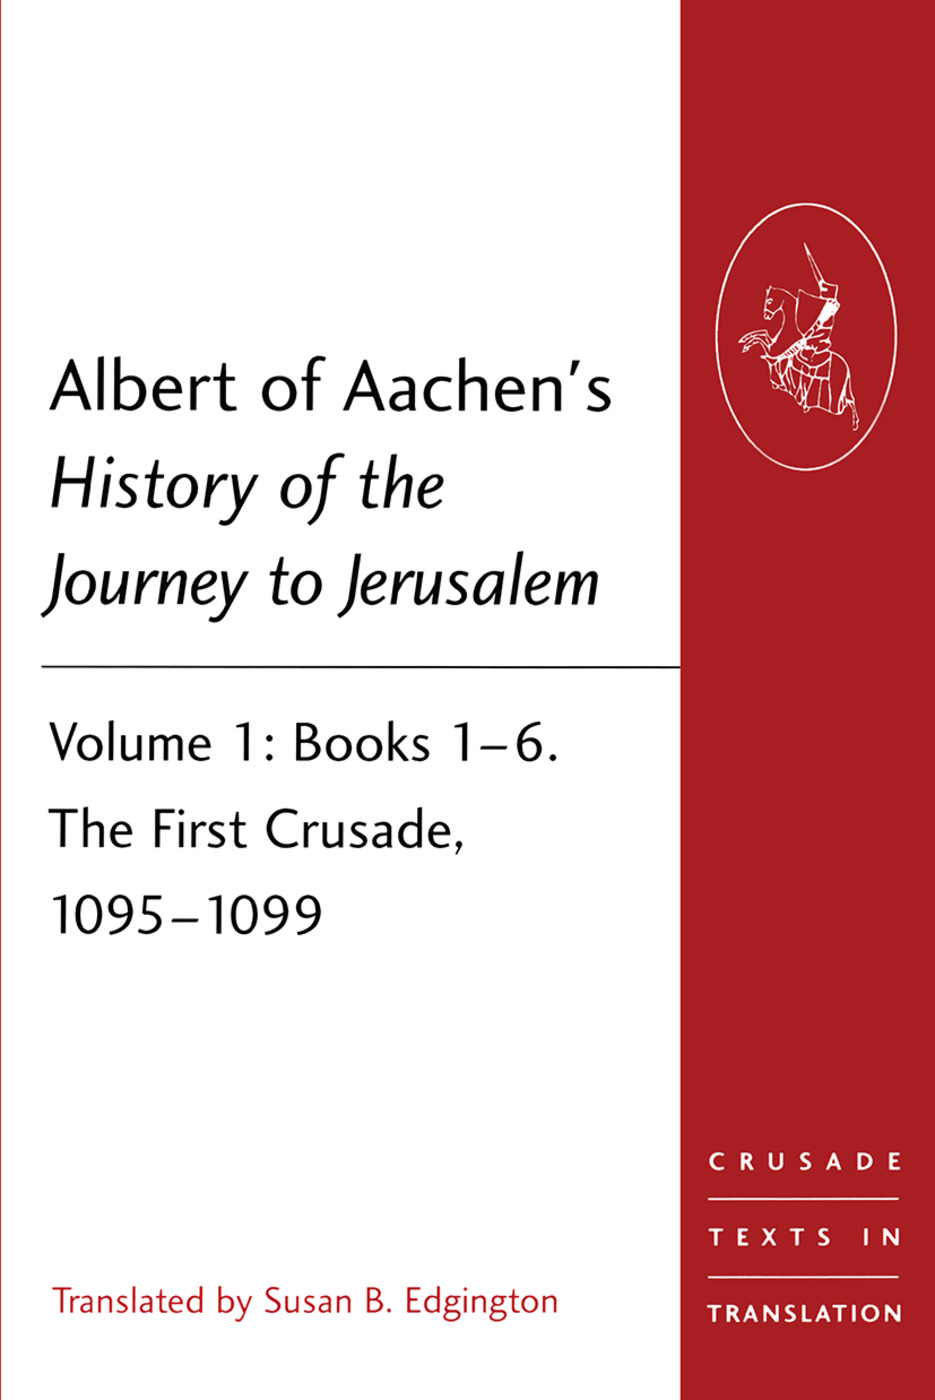 Albert of Aachen's History of the Journey to Jerusalem: Volume 1: Books 1–6. The First Crusade, 1095–1099 book cover